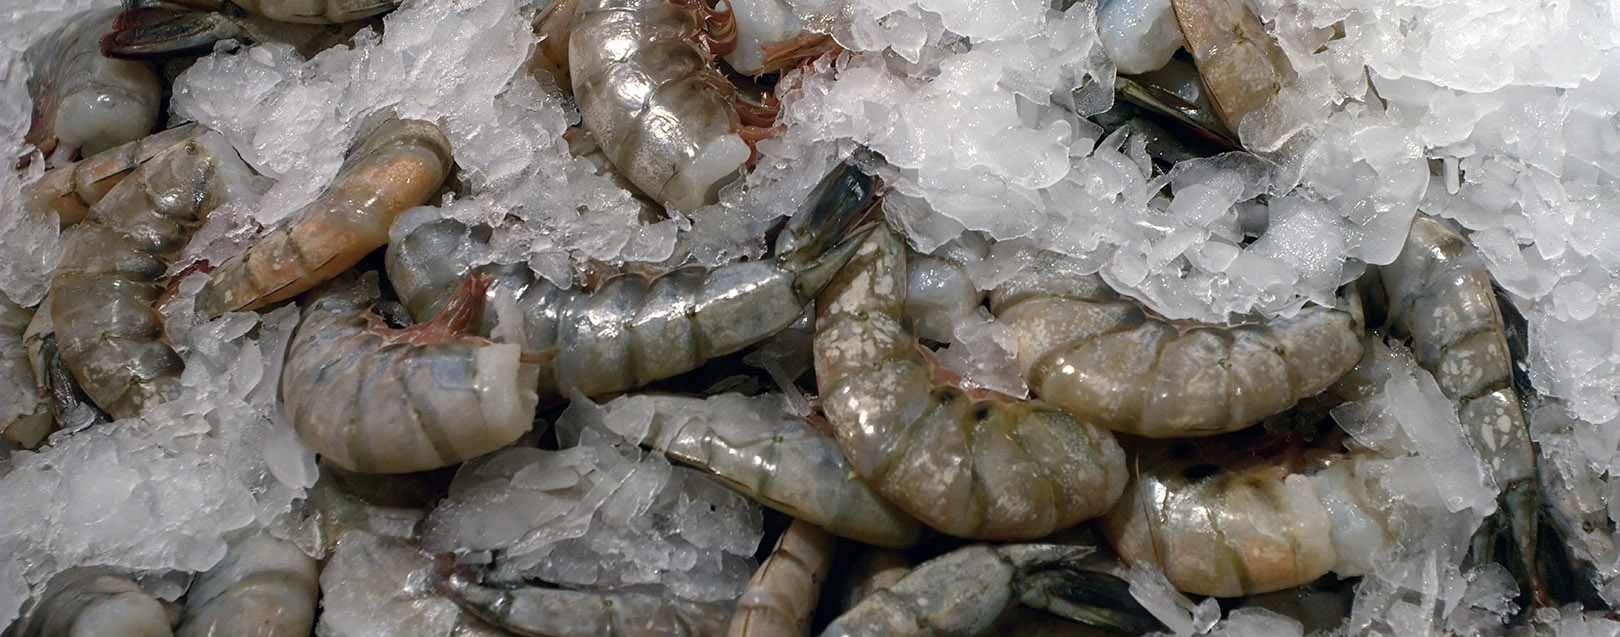 US cutting duty on shrimp imports to benefit Indian farmers: ICRA